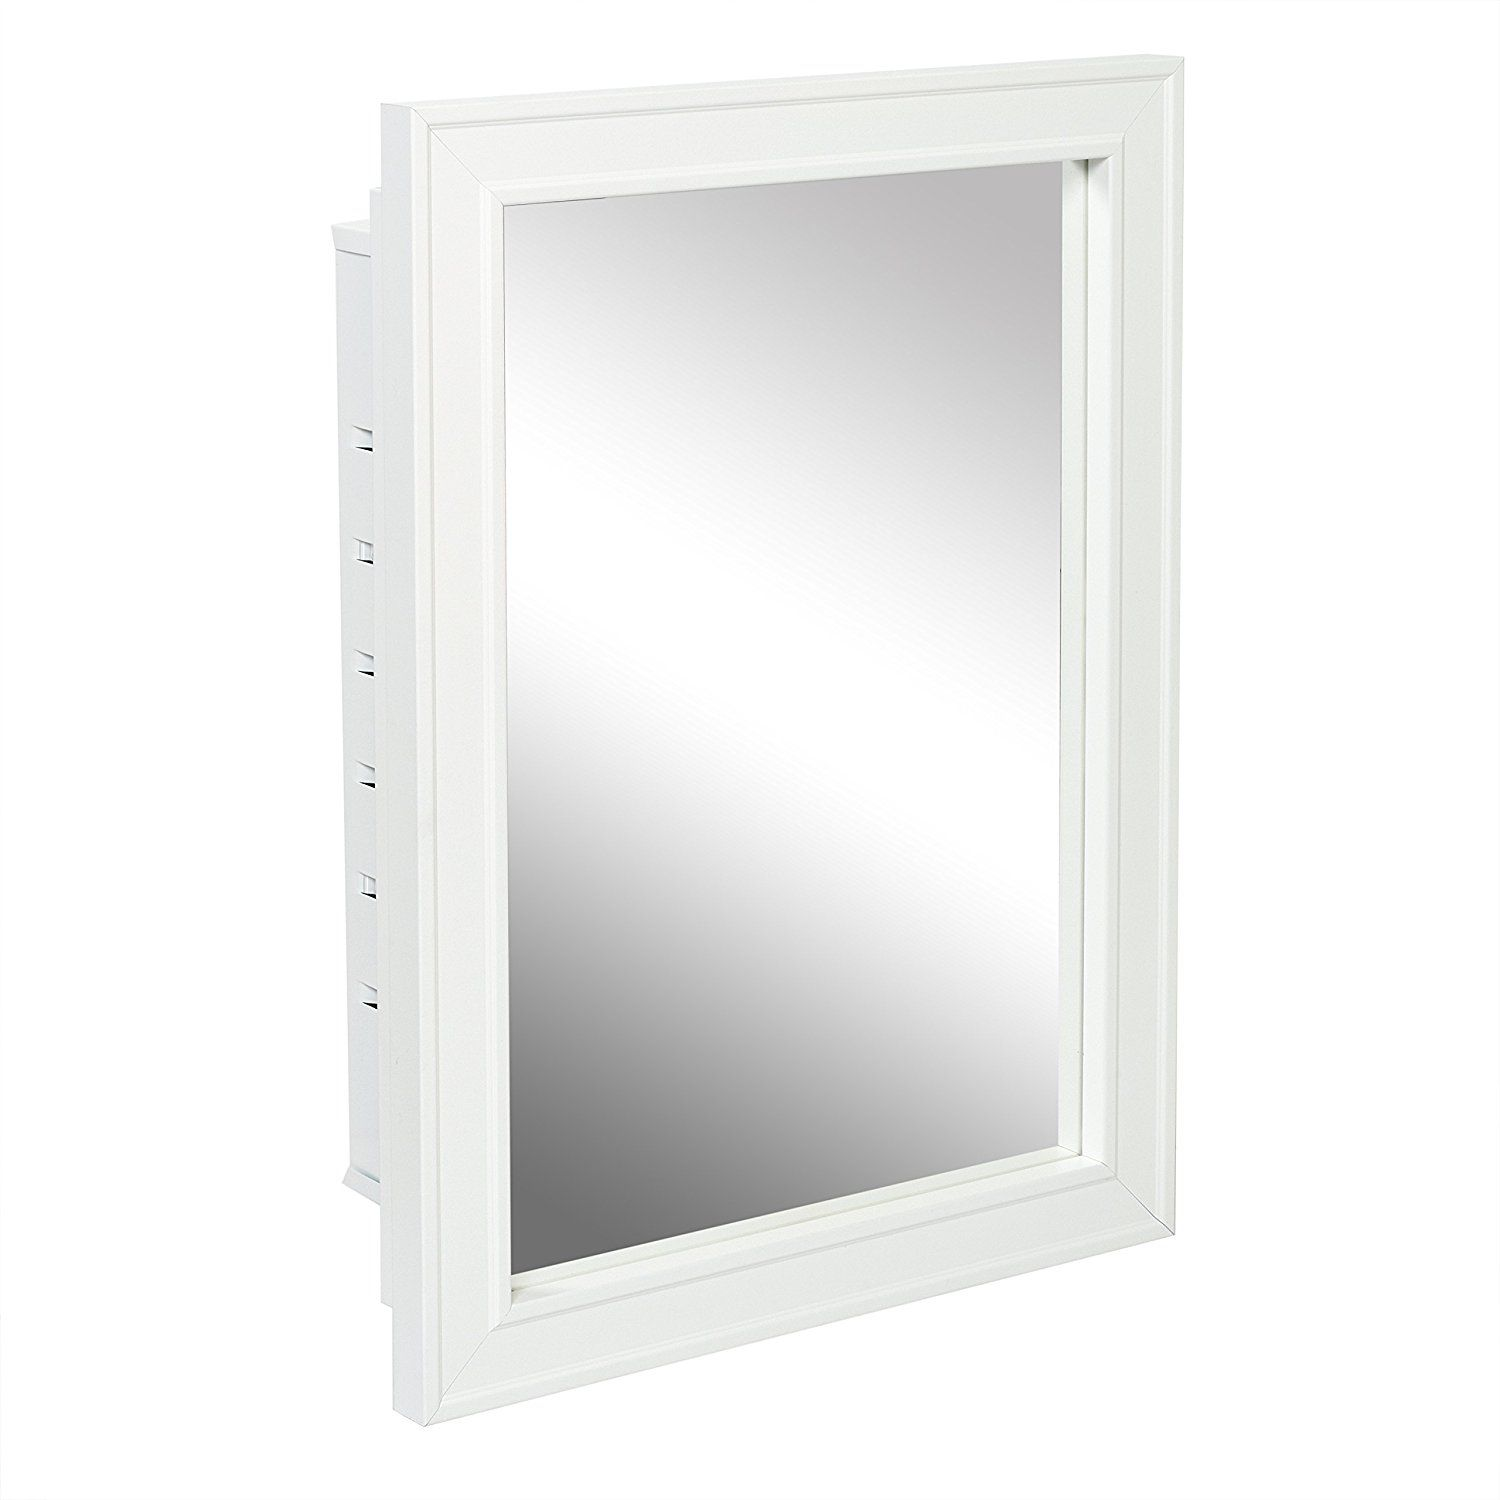 Amazon.com: American Pride G9610R1W - Recessed White Wood Framed ...